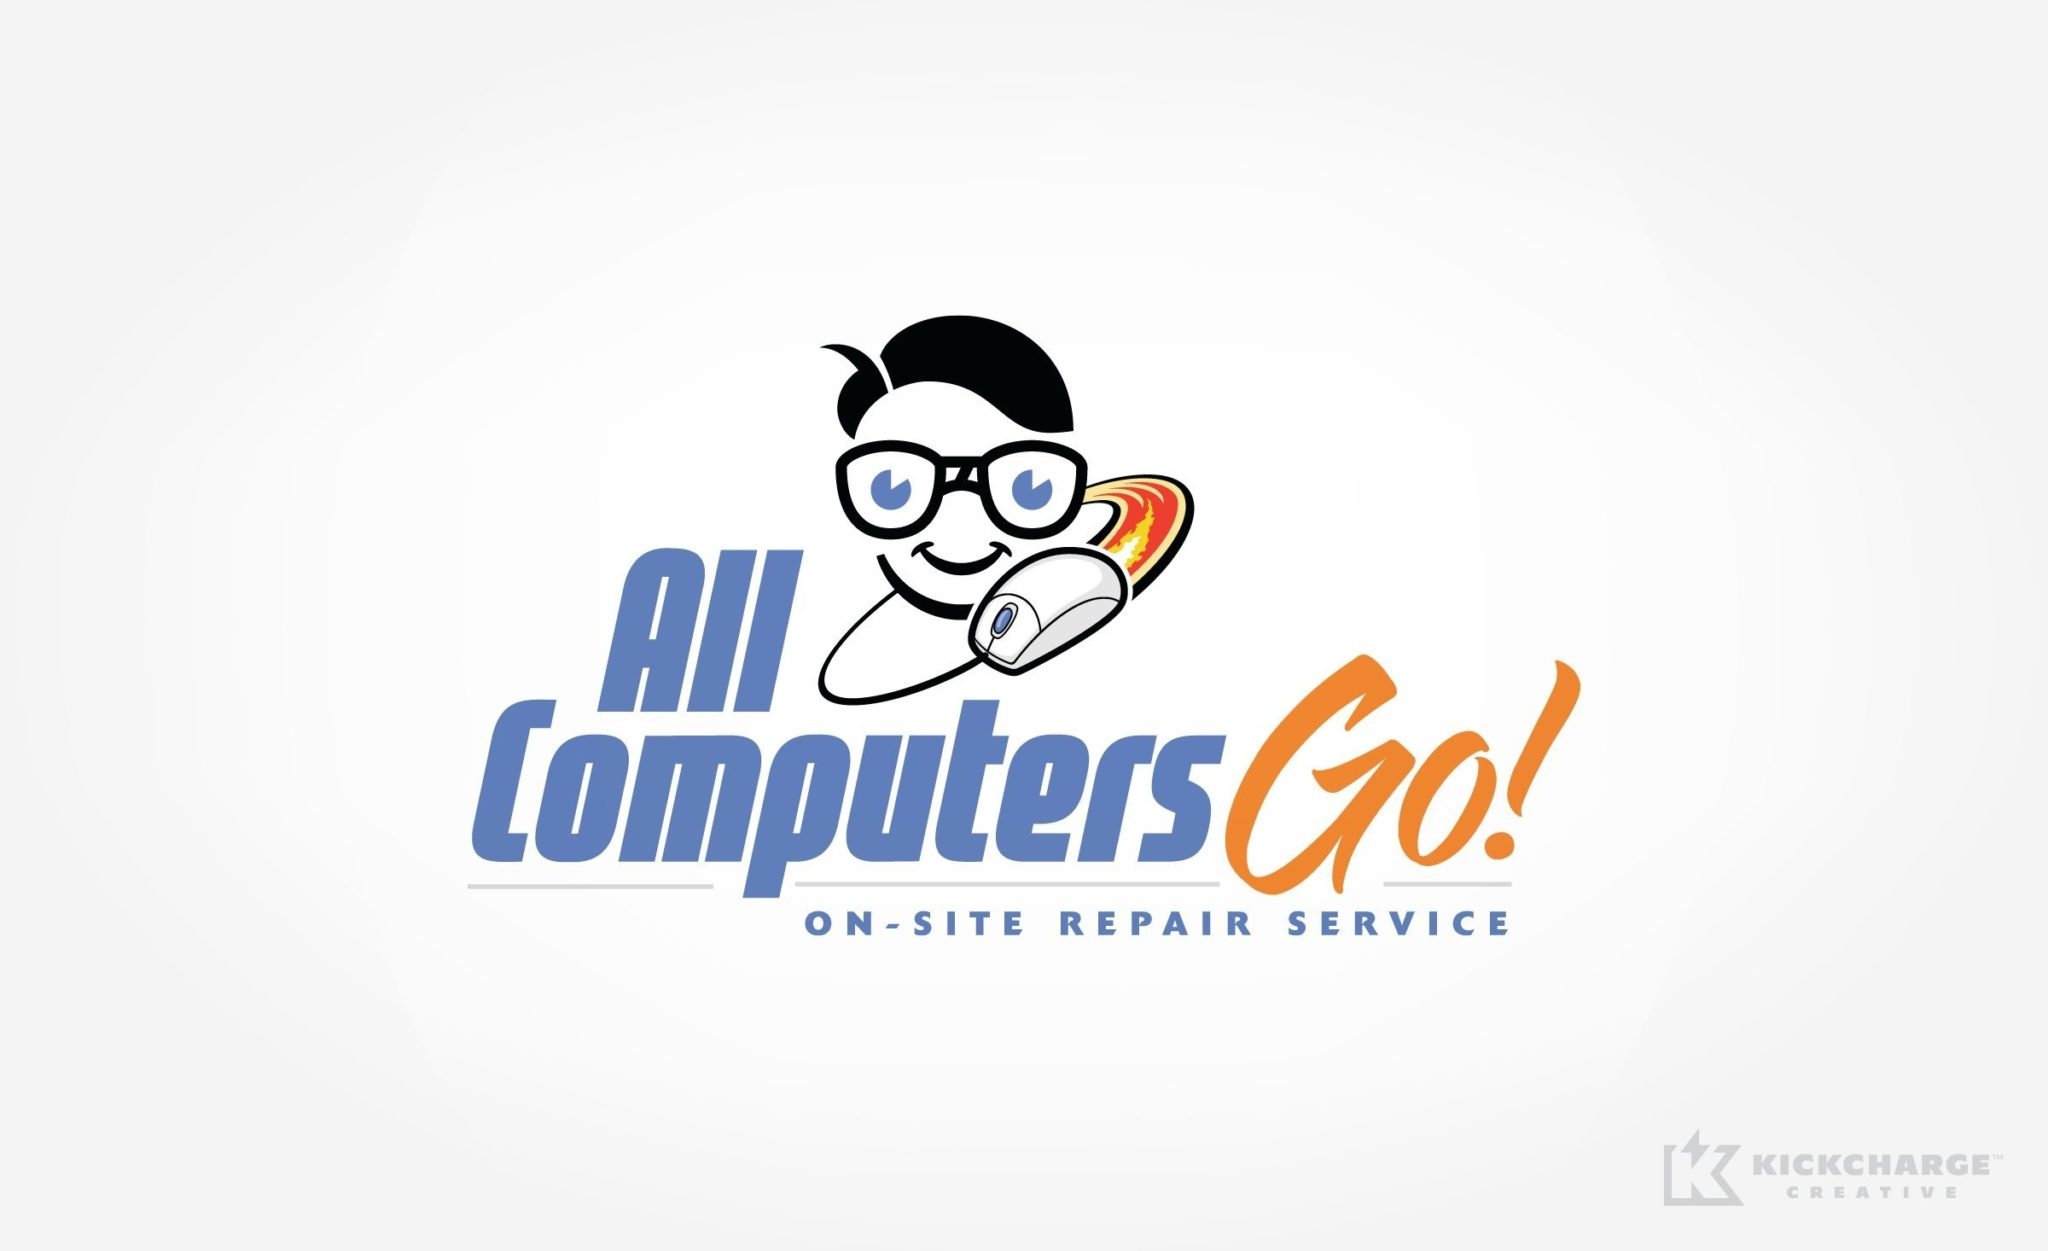 All Computers Go